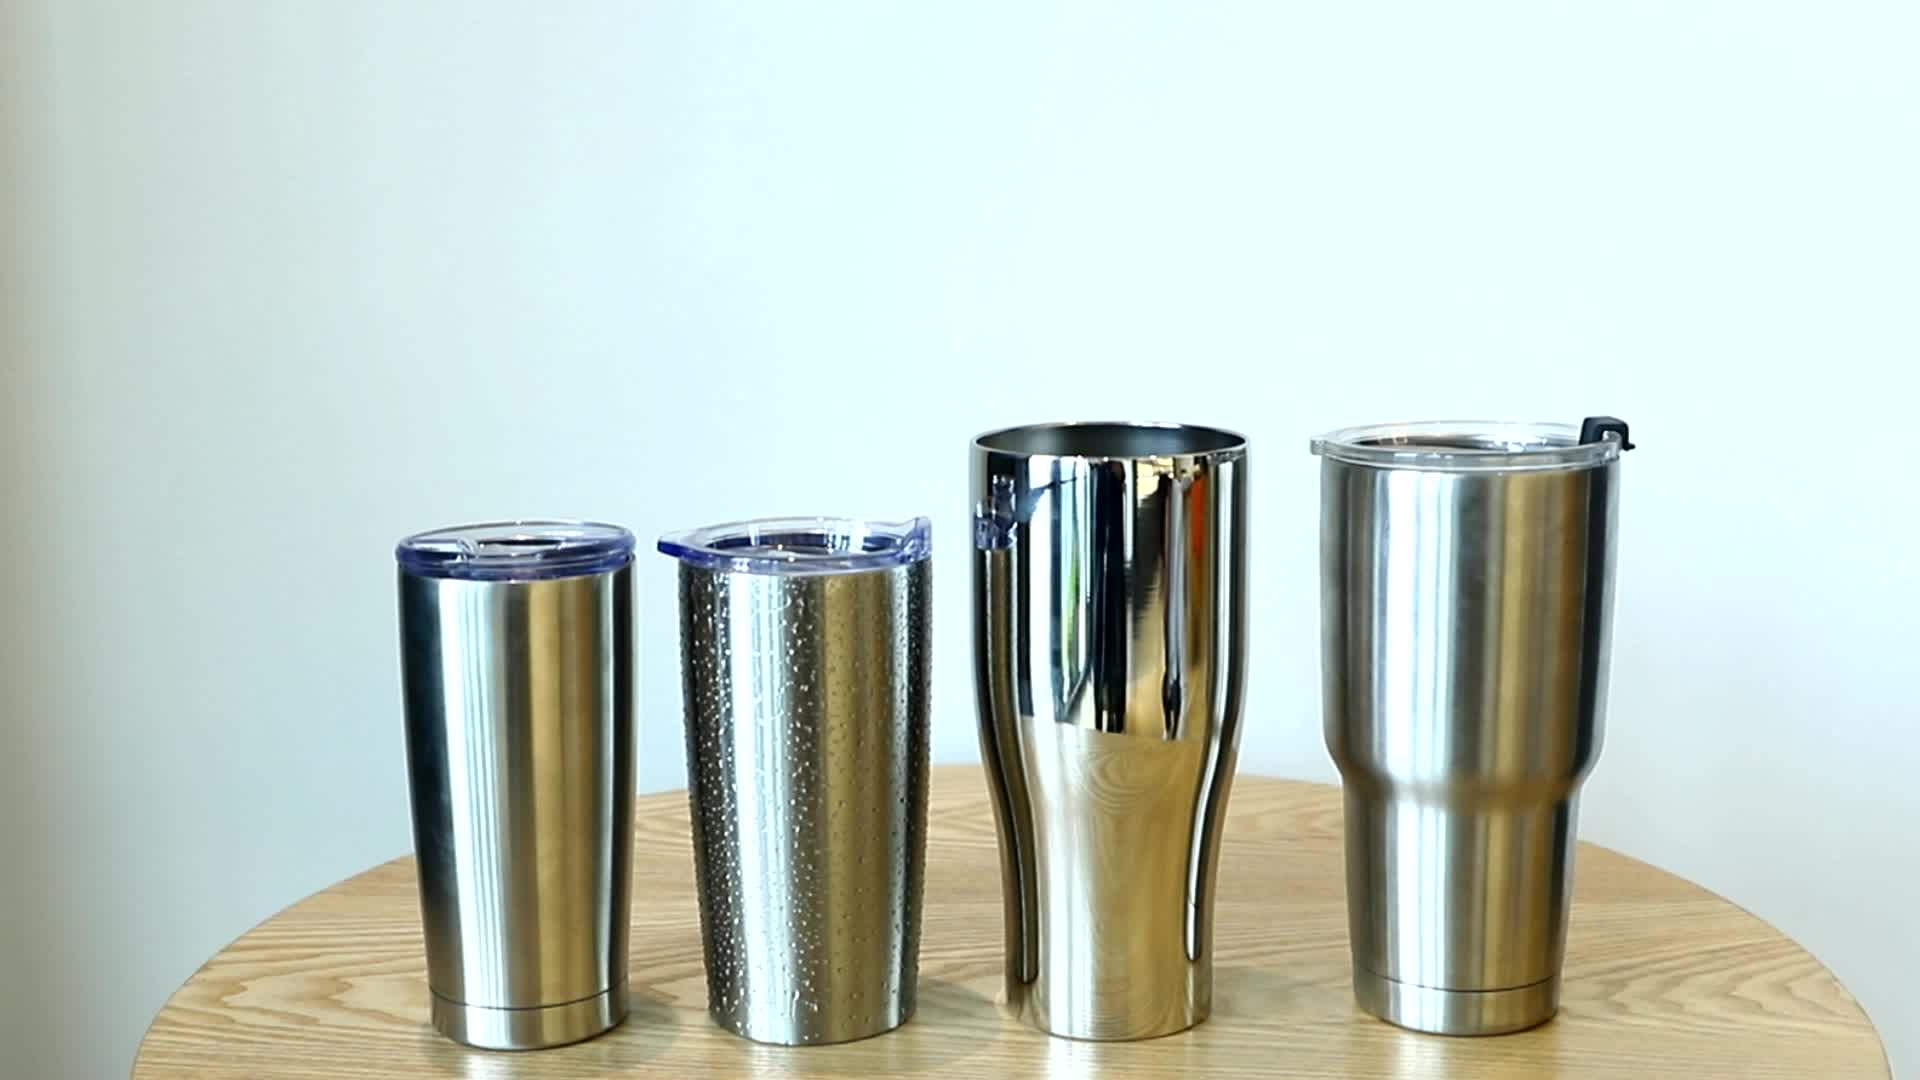 20oz 30oz Double Wall Stainless Steel Vacuum Insulated Tumbler Cups Coffee Tumbler Cups Wholesale